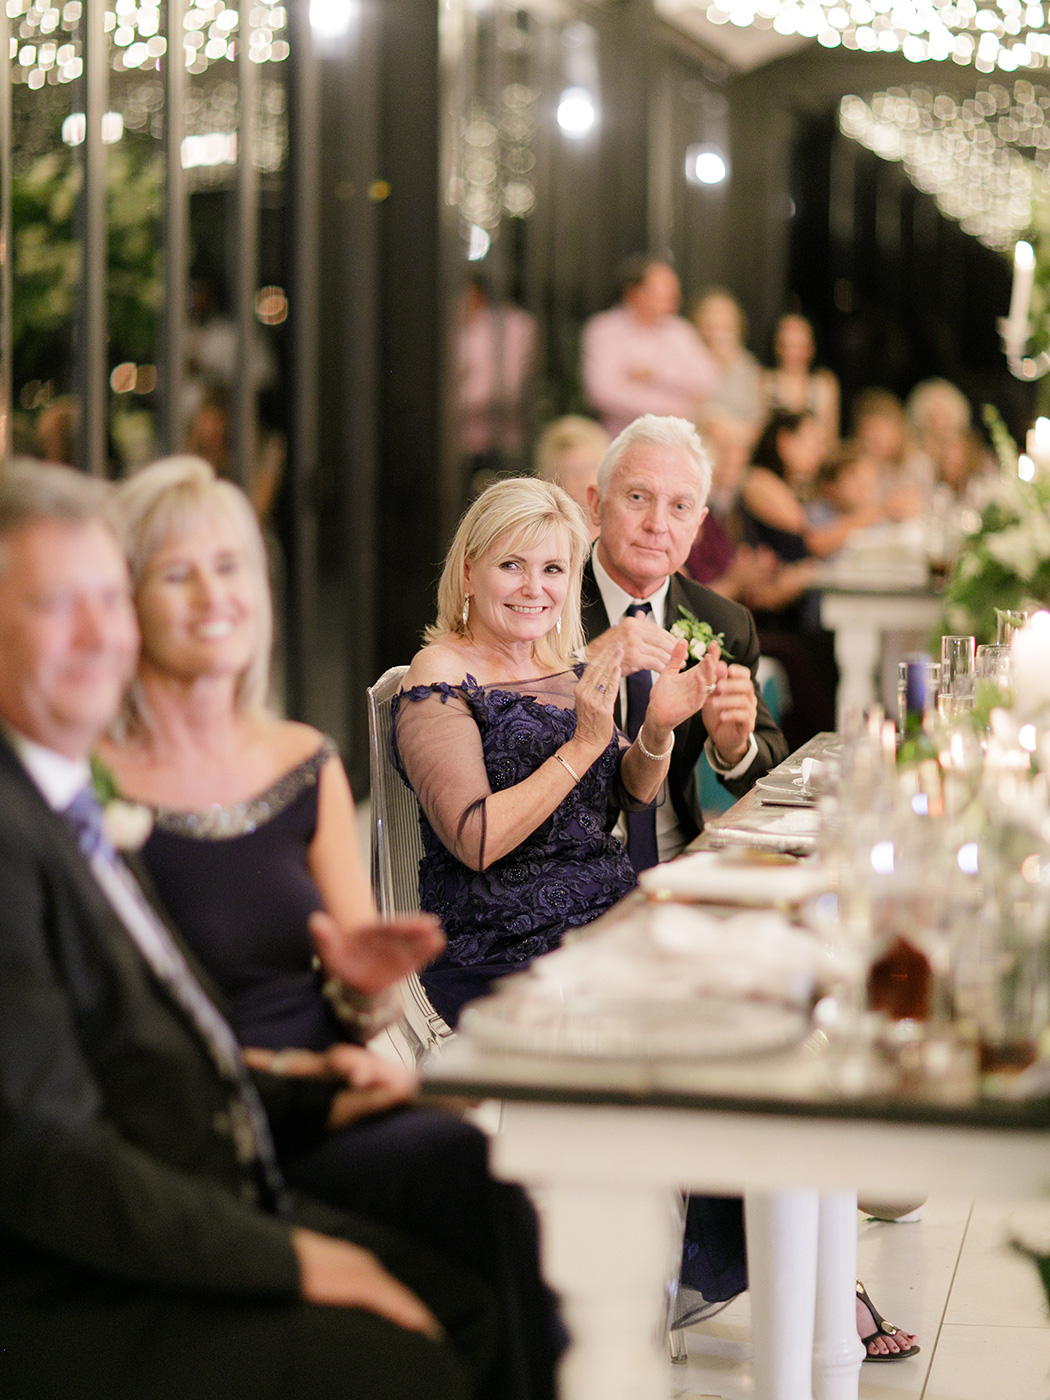 Wedding Reception | Rensche Mari Photography